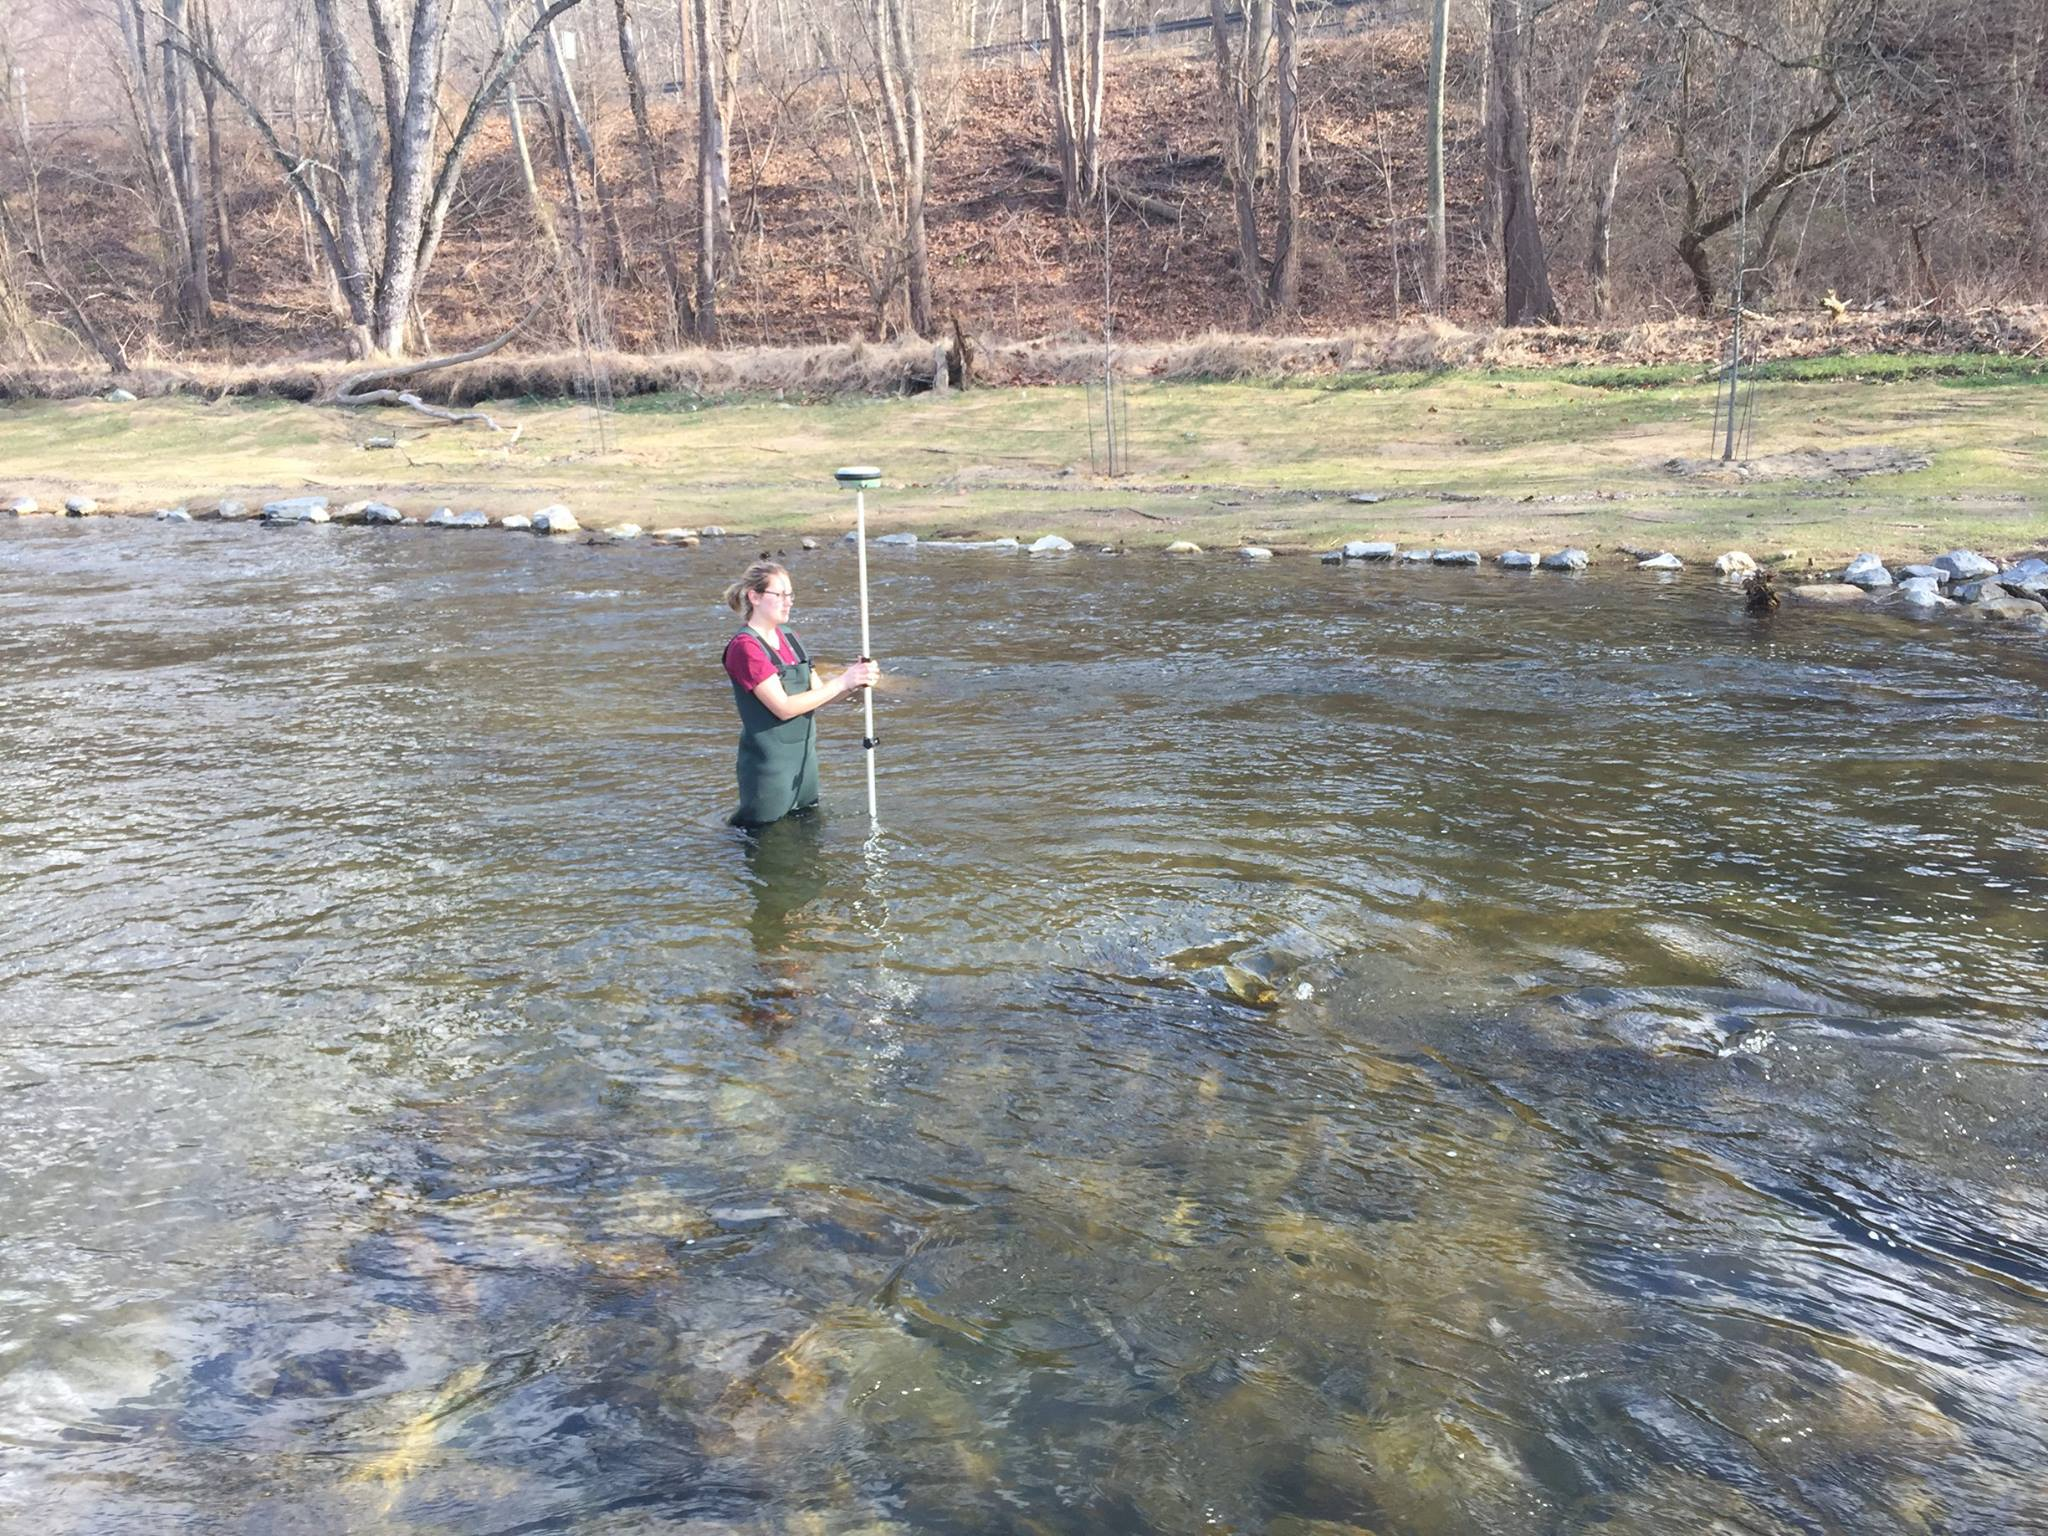 In this photo, Princeton Hydro team member gathers data on the Hughesville Dam removal, using GPS to check the elevation of the constructed riffle on the beautiful Musconetcong River.